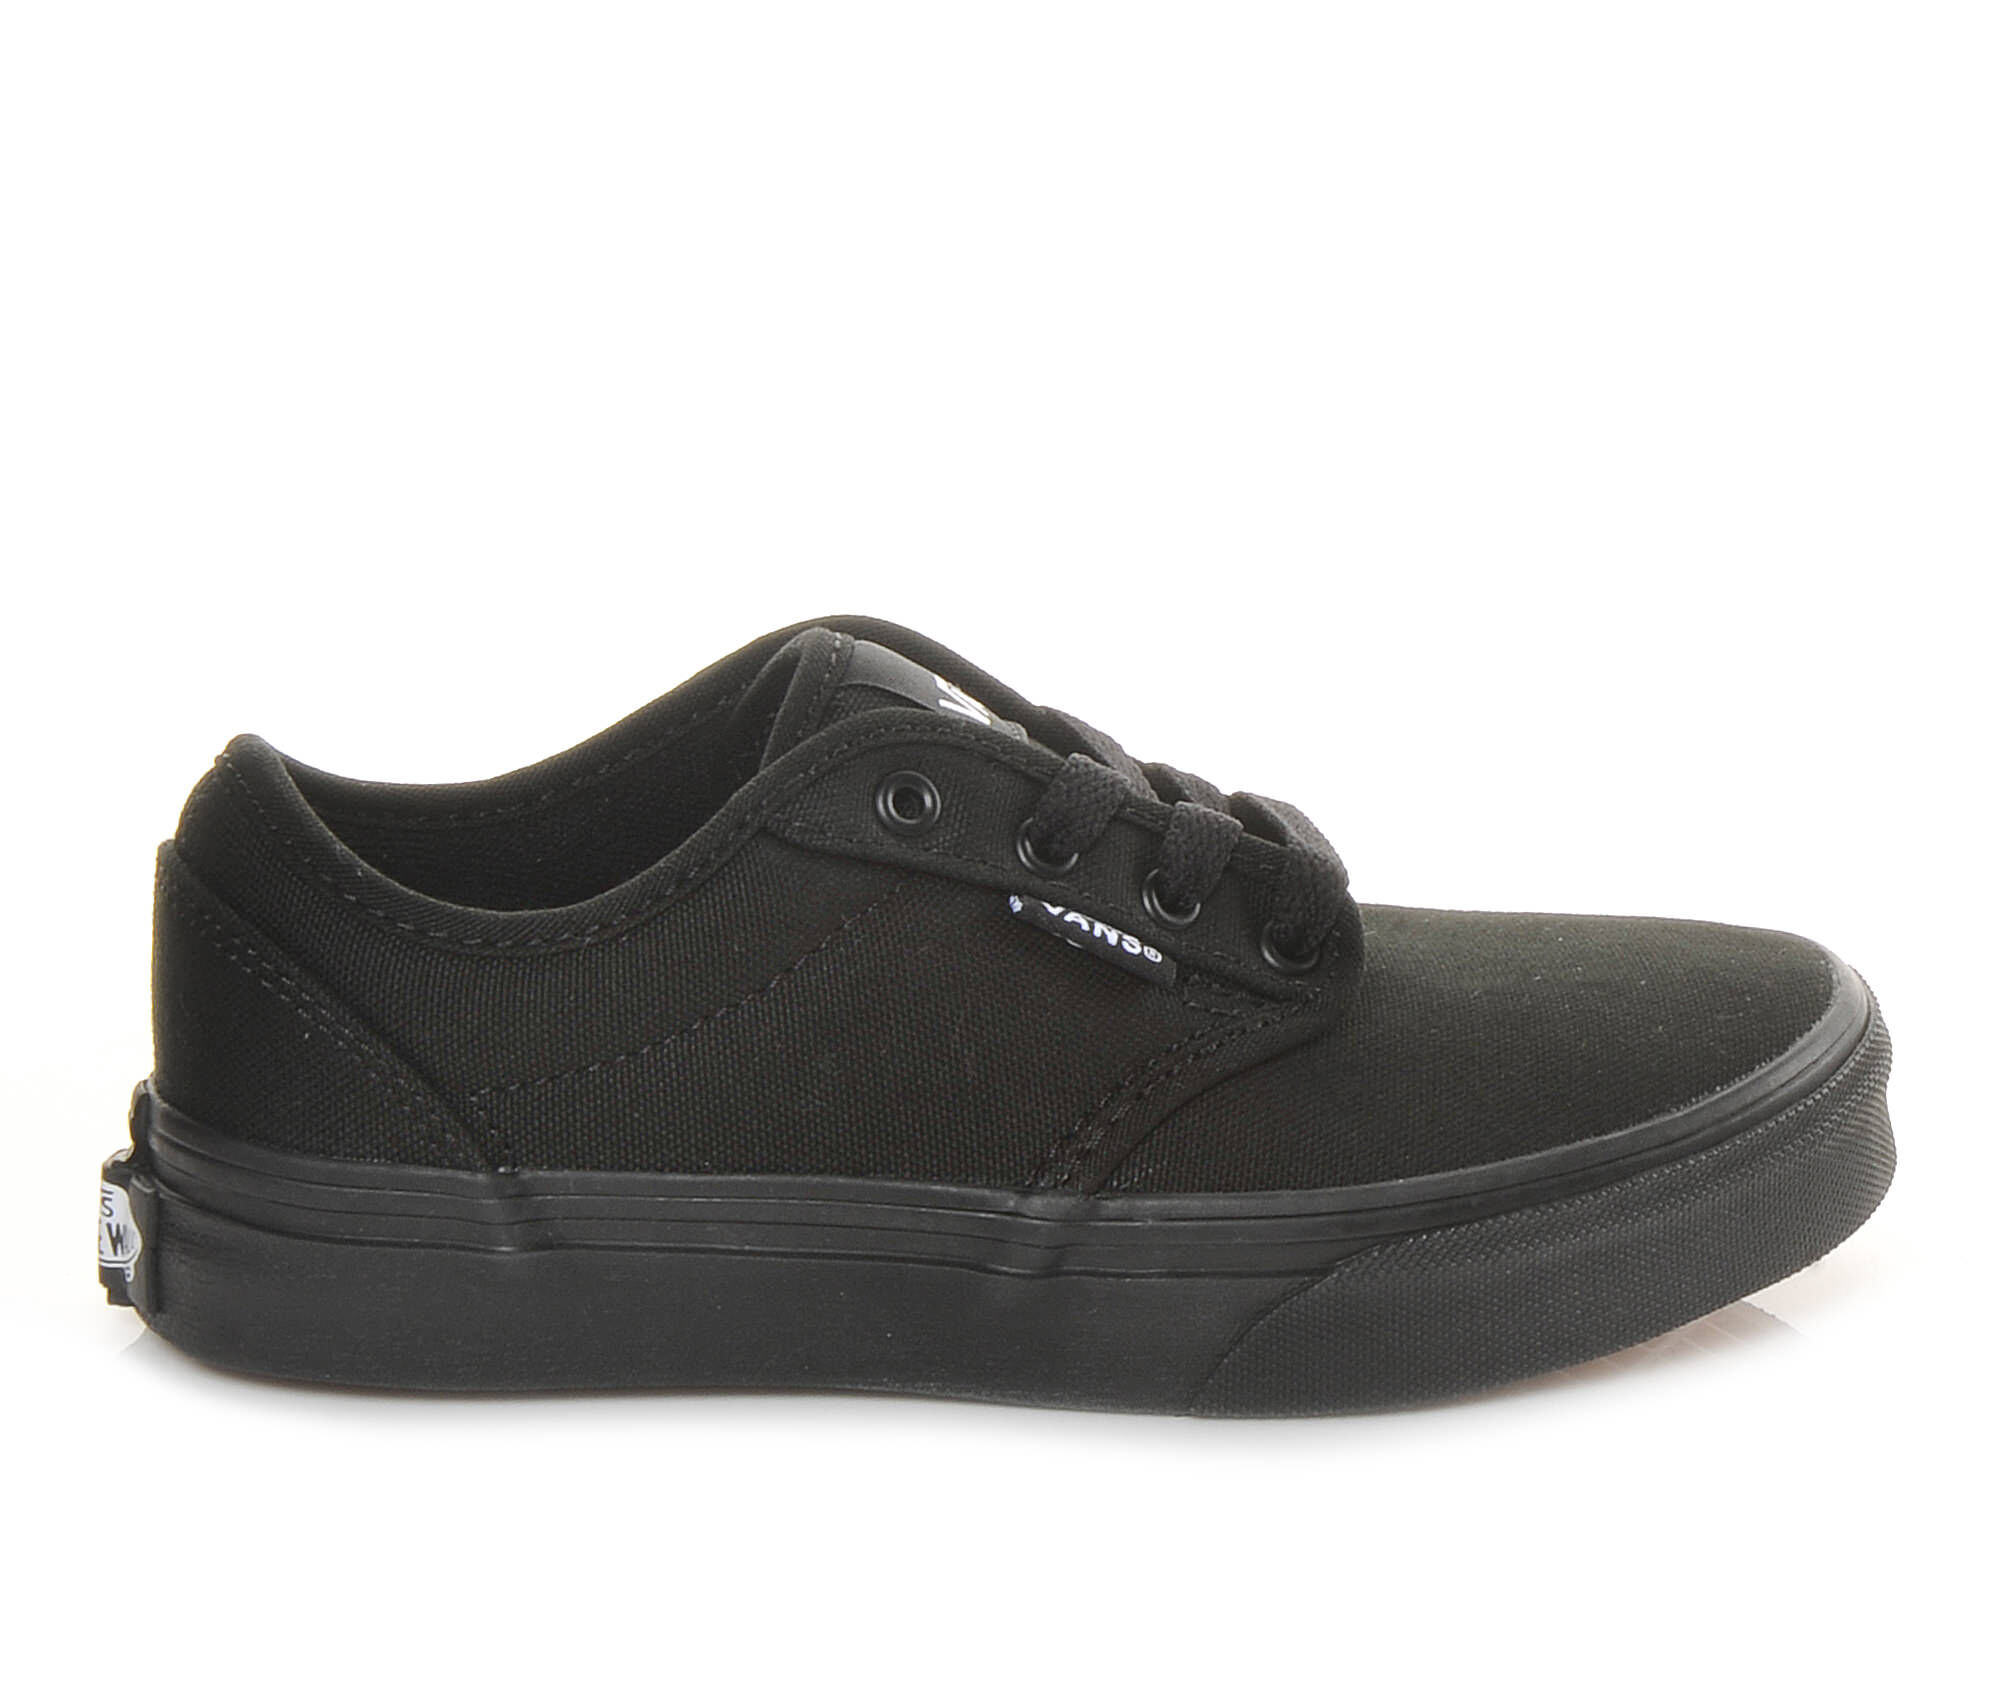 vans black boys shoes